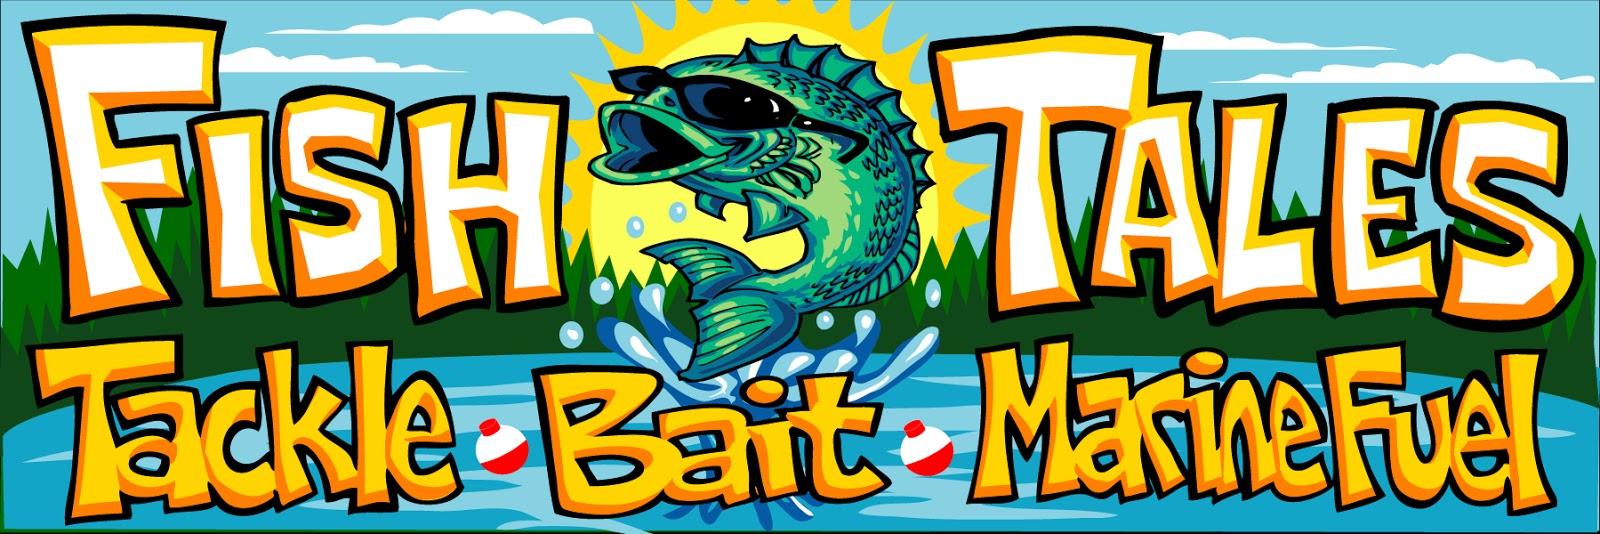 Fish Tales logo for web.jpg